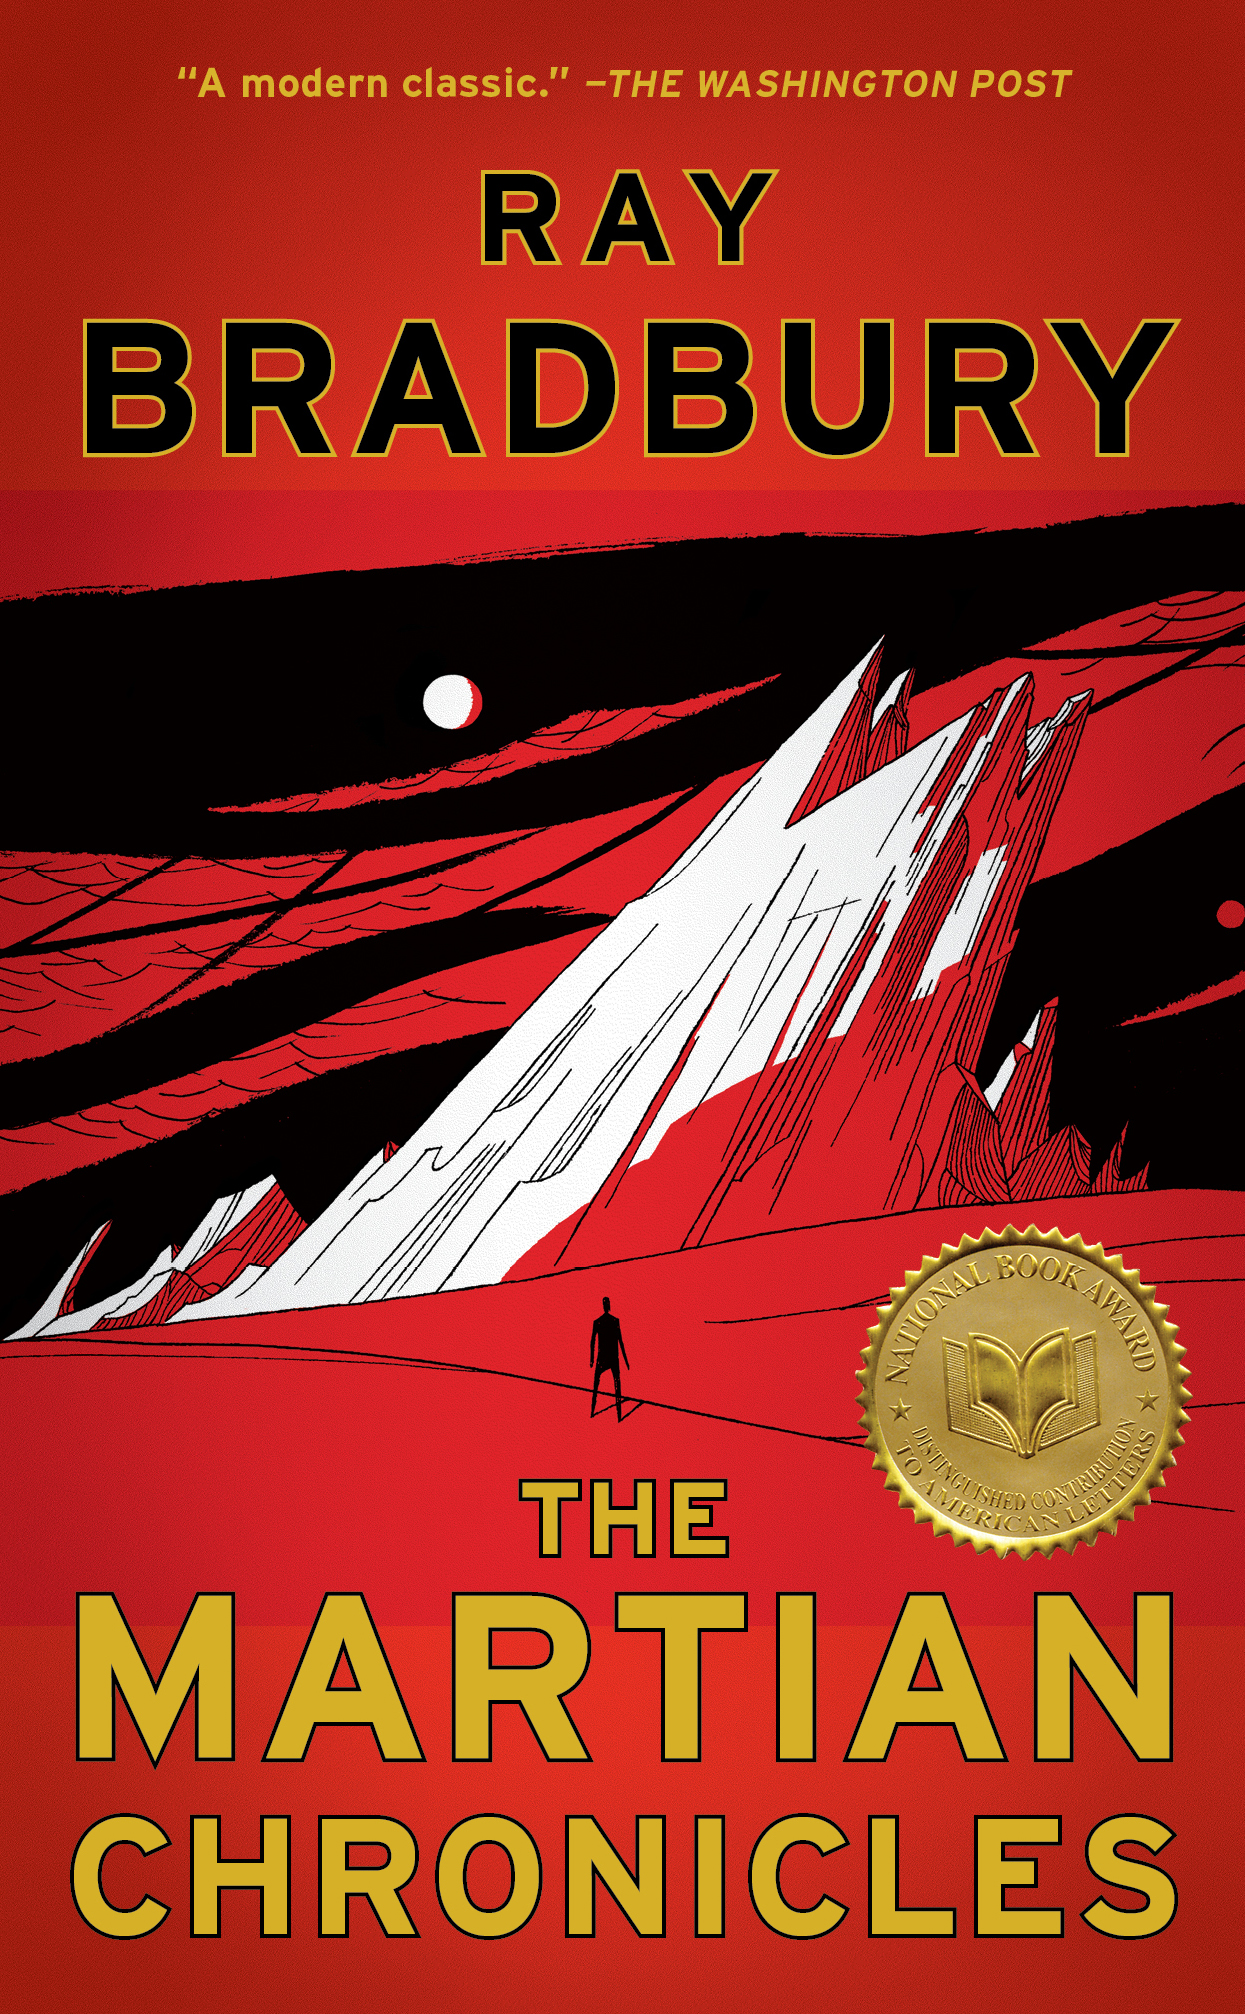 the relationships between martians and earthlings in the martian chronicles a book by ray bradbury I love the martian chronicles by ray bradbury it's about progress here on earth and first humans are the them to be feared and dealt with by the martians.